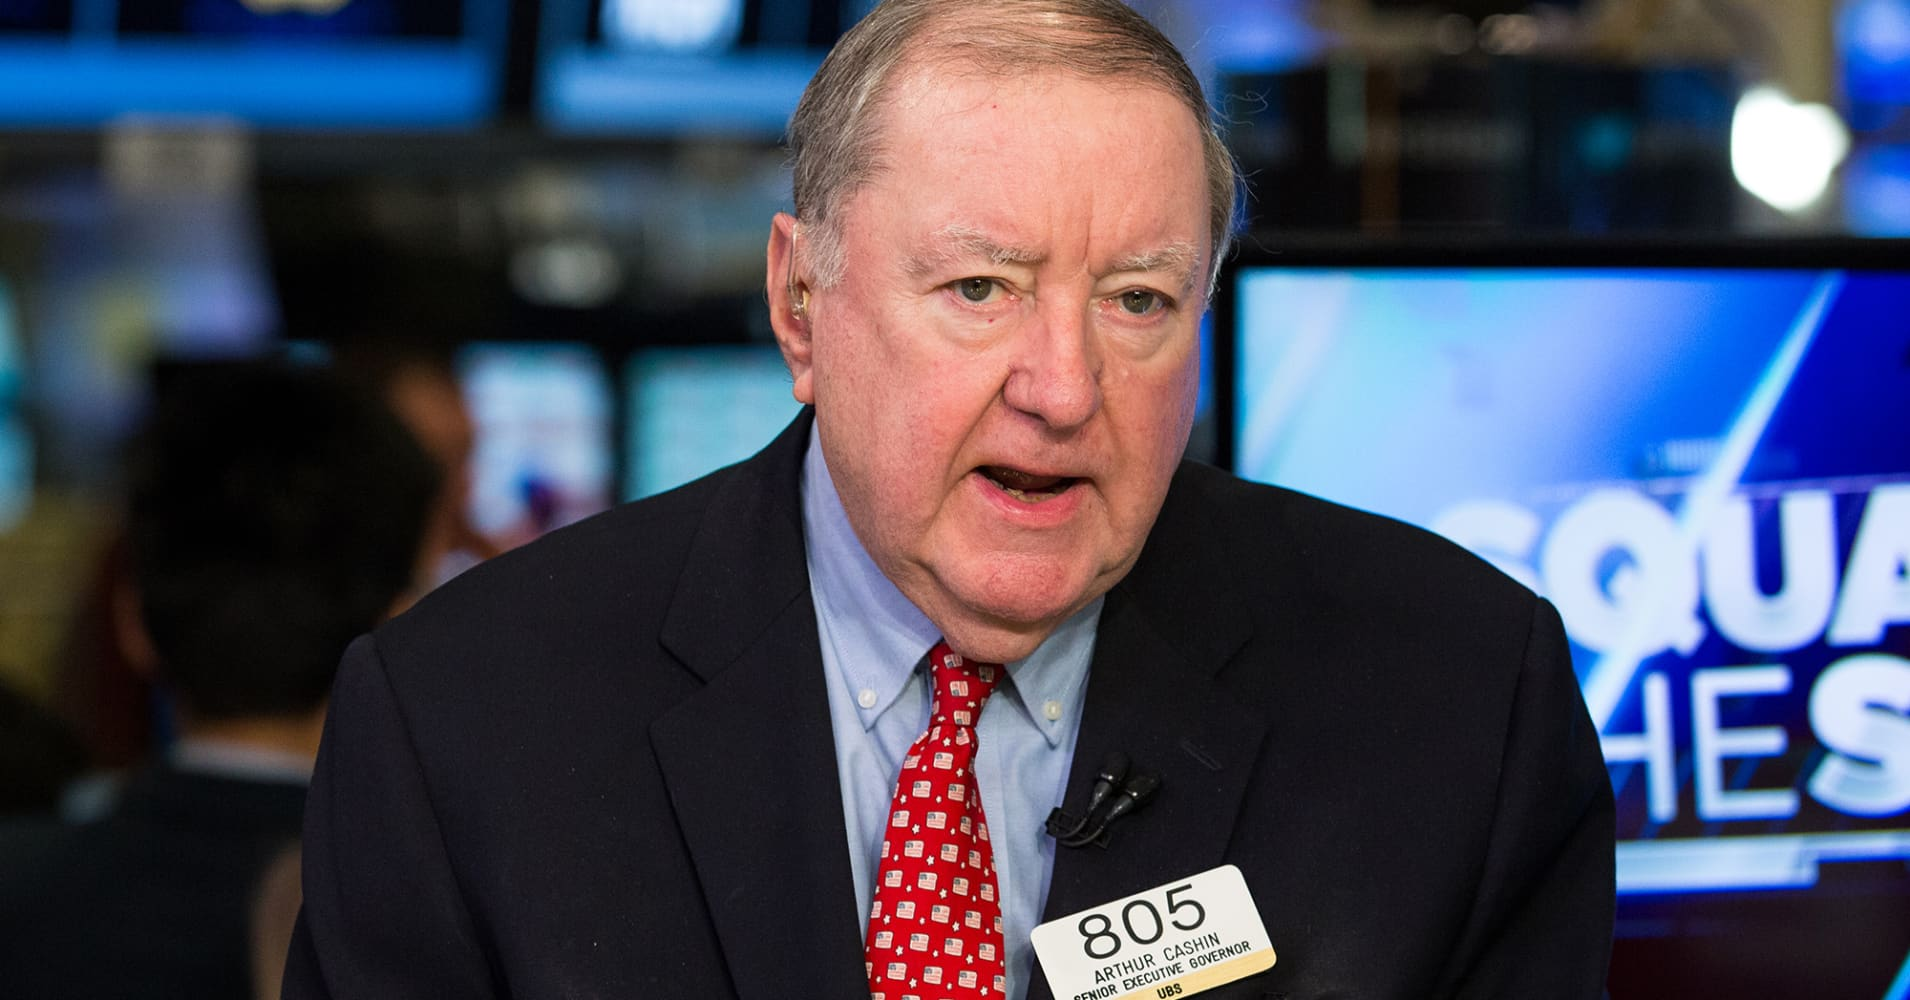 Art Cashin: The stock market is like someone stumbling 'in a dark room'